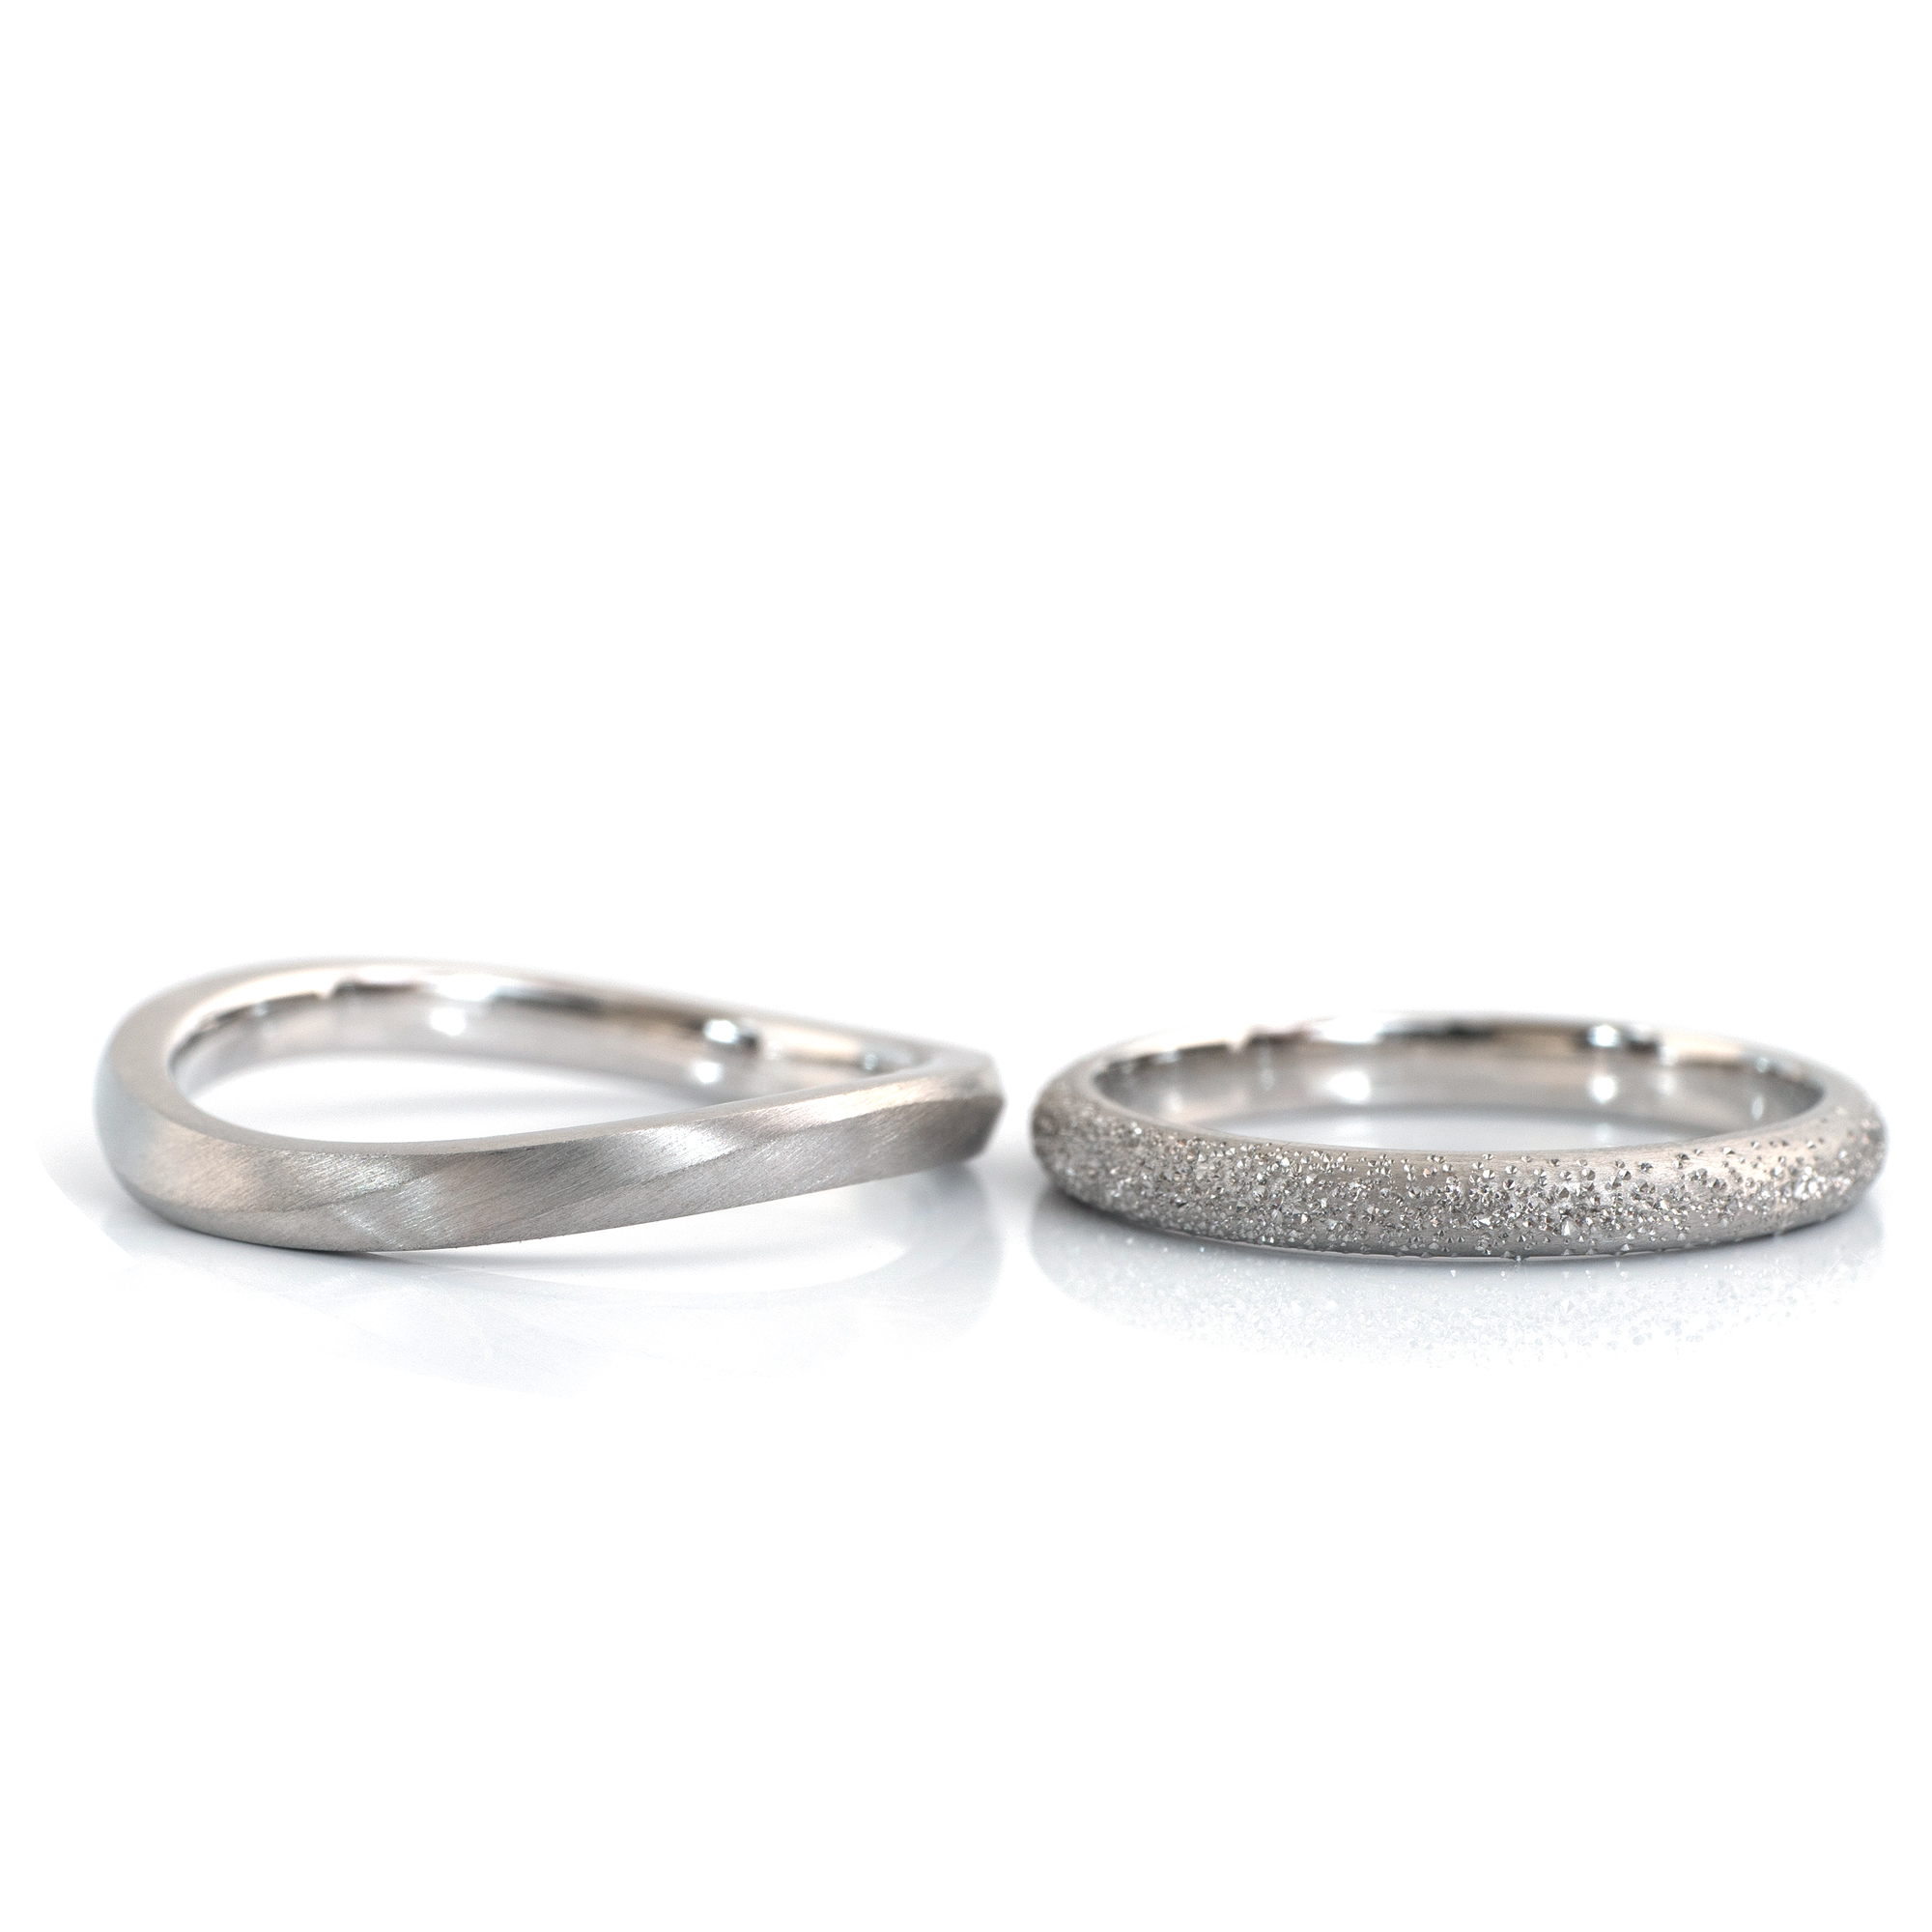 2.2mm wave with concave, 2.3mm round with snow texture in platinum  #屋久島でつくる結婚指輪